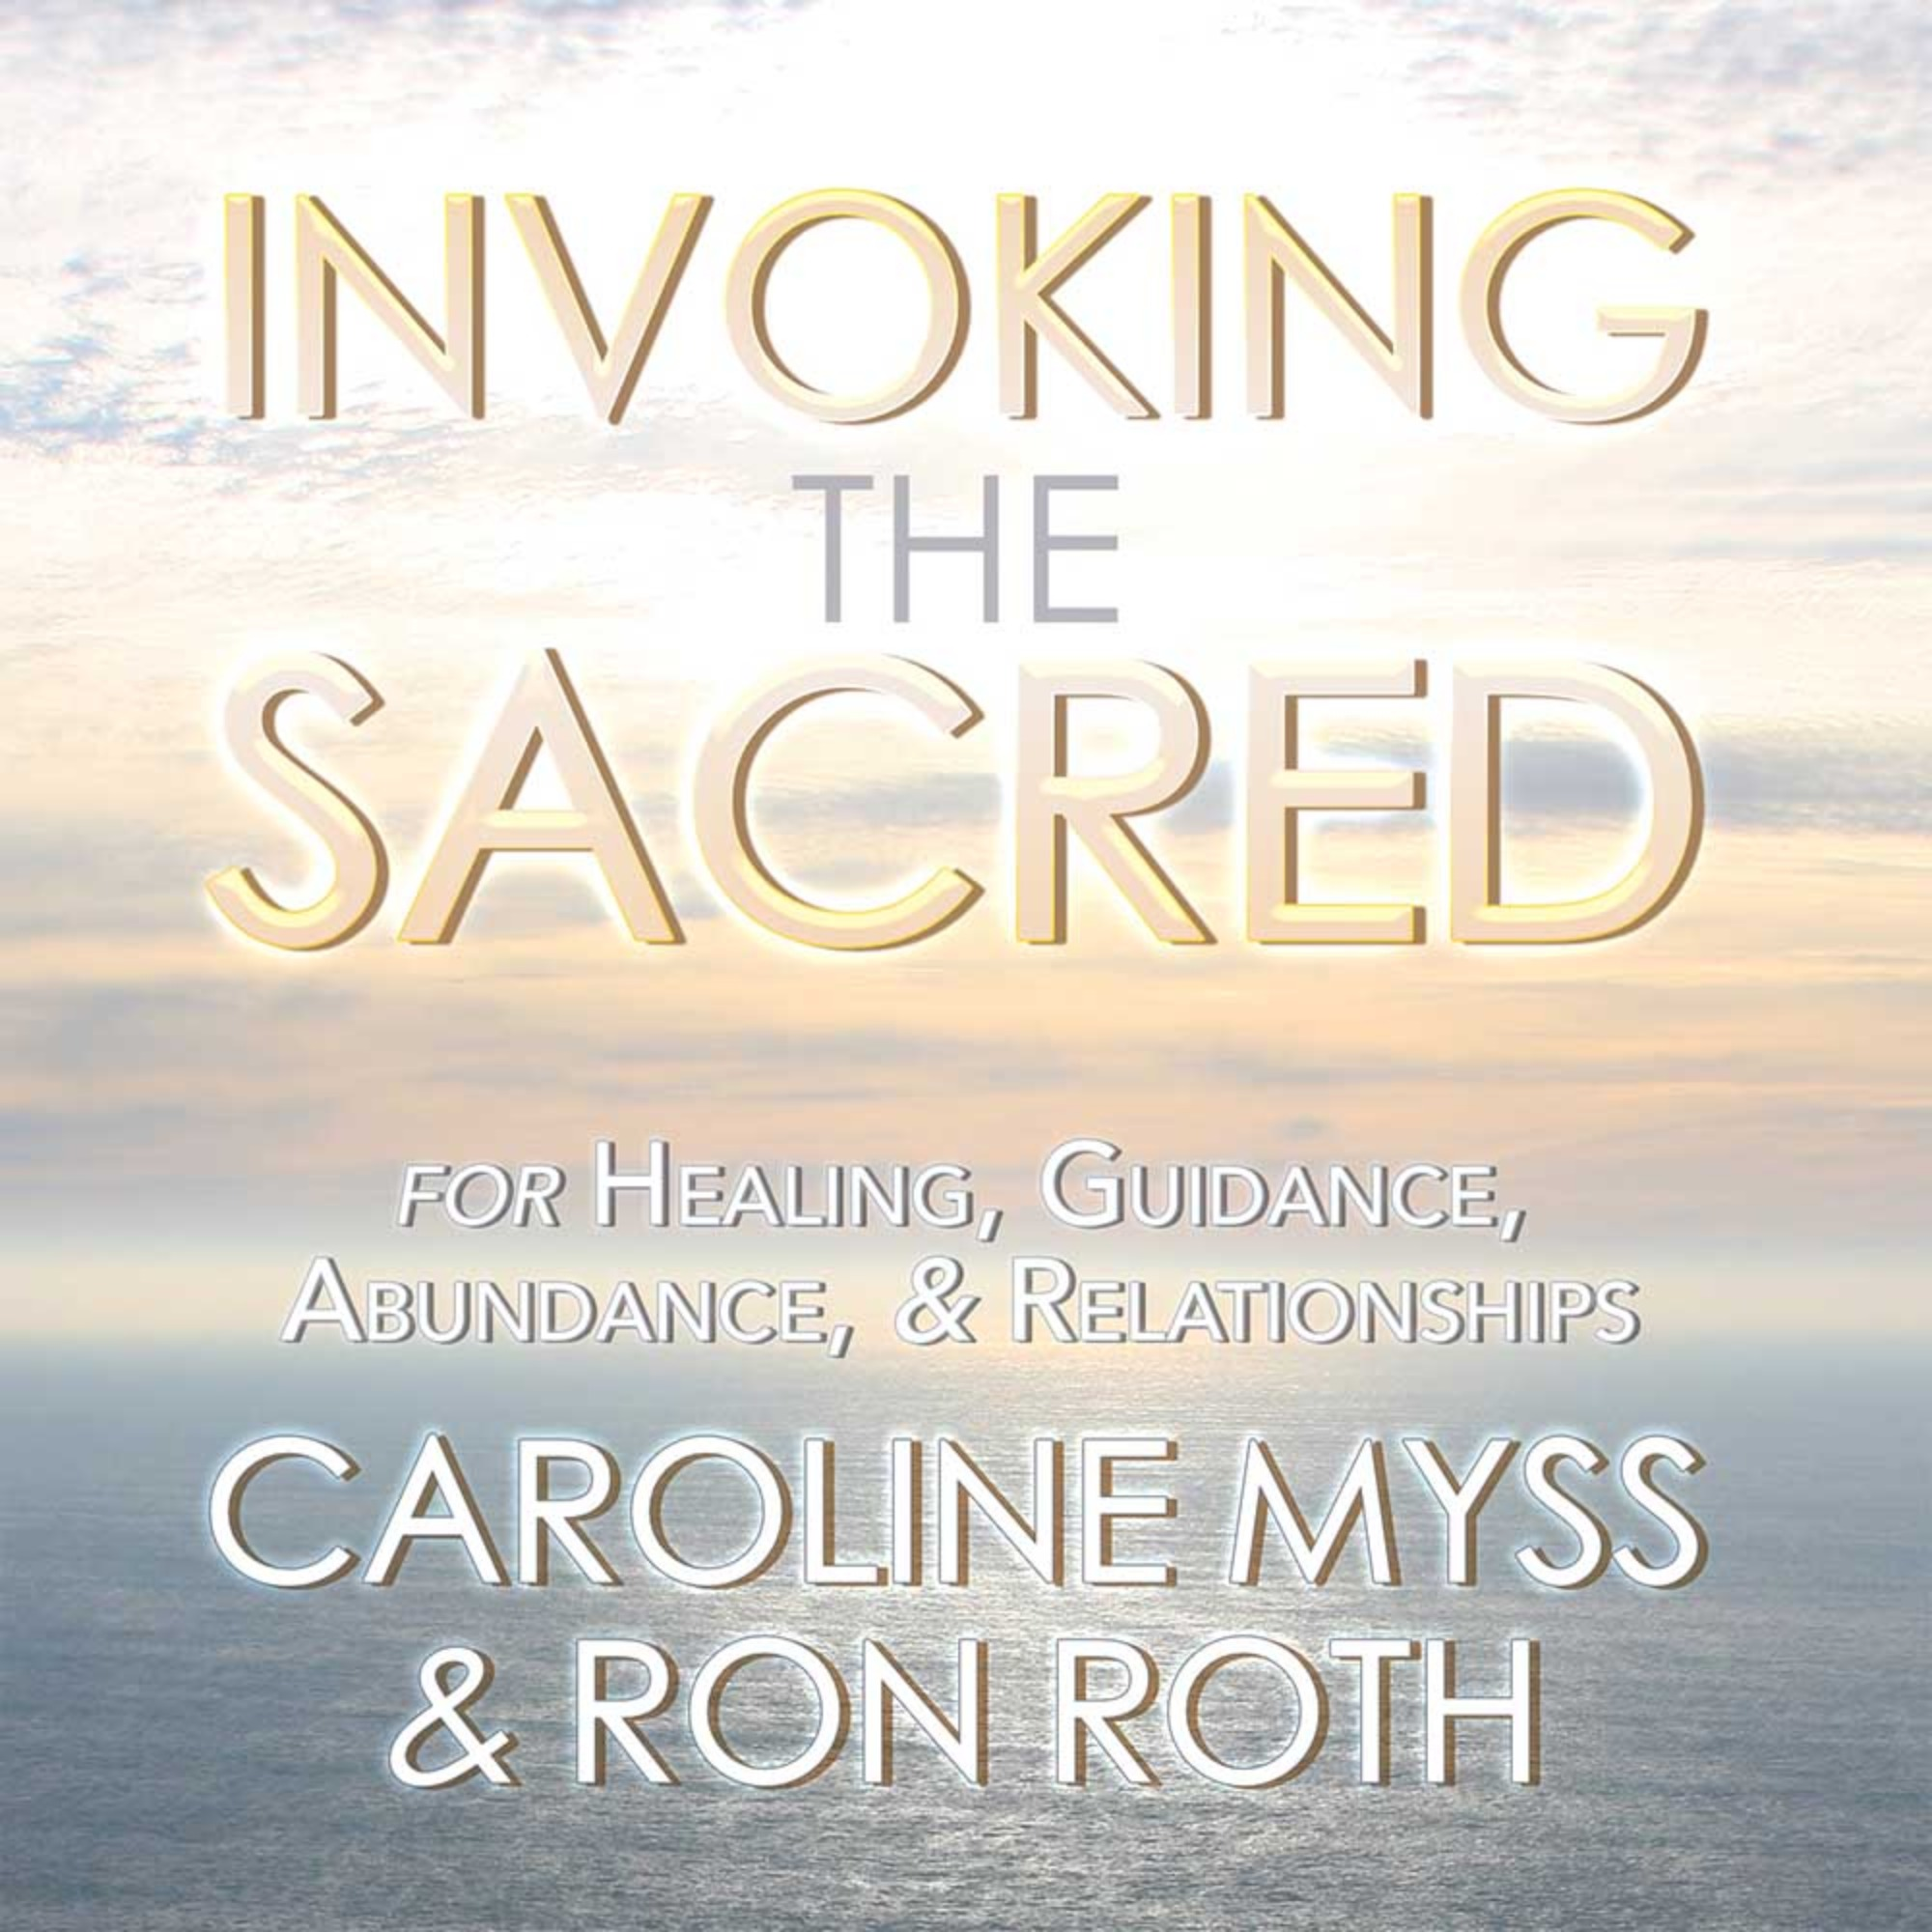 Invoking the Sacred: For Healing, Guidance & Abundance